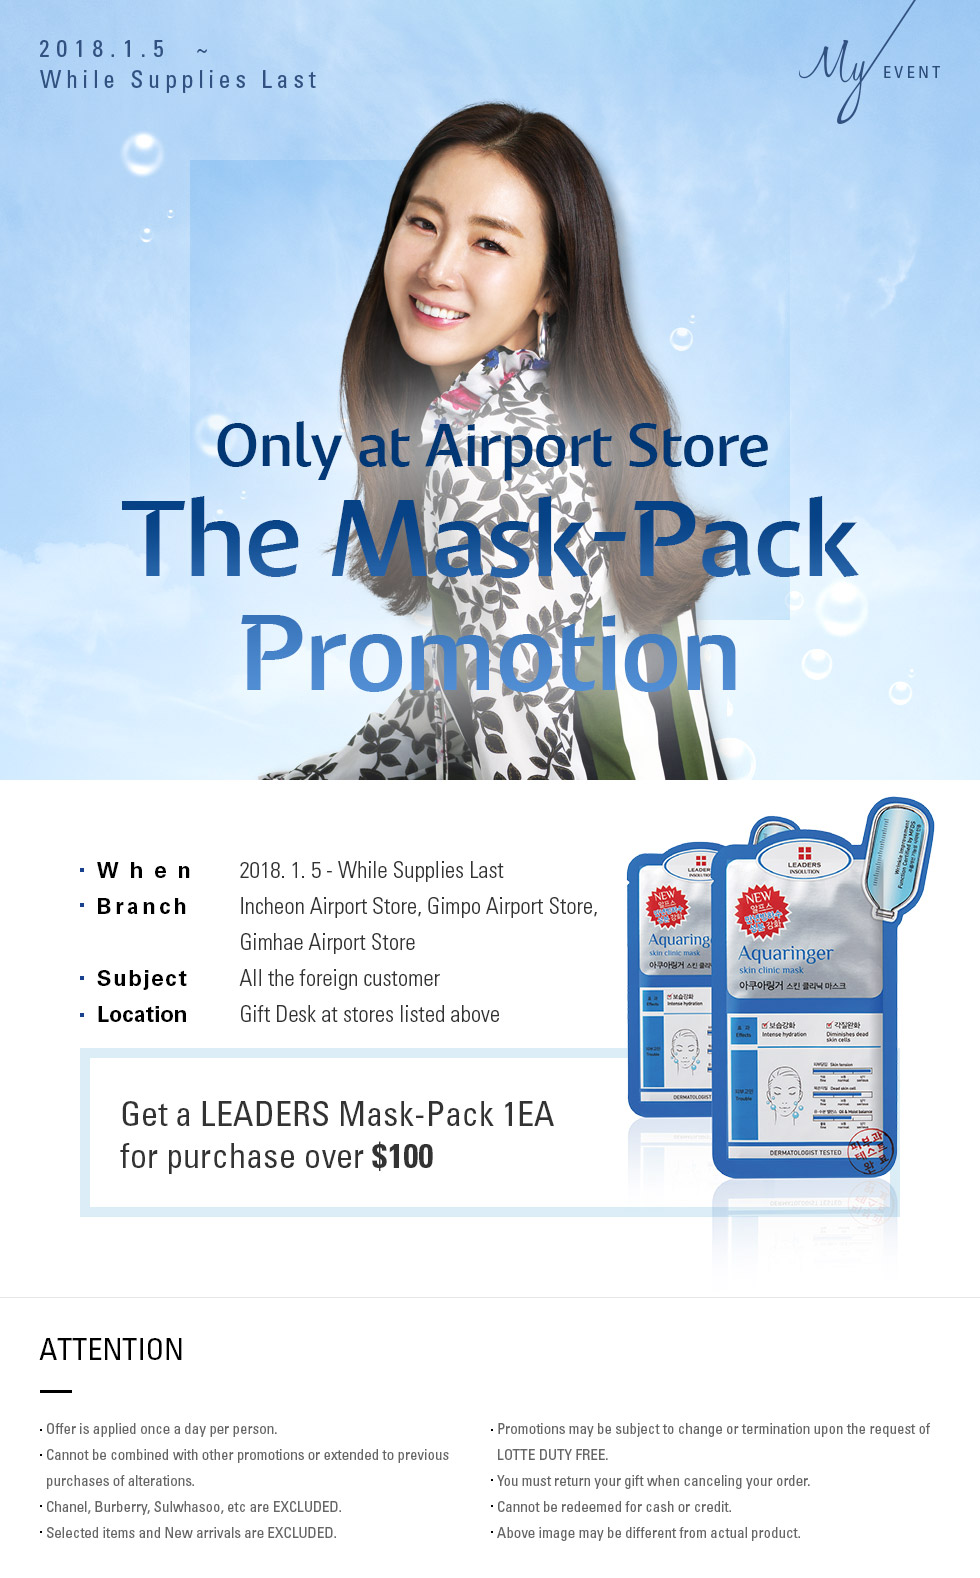 Only at Airport Store The Mask-Pack Promotion